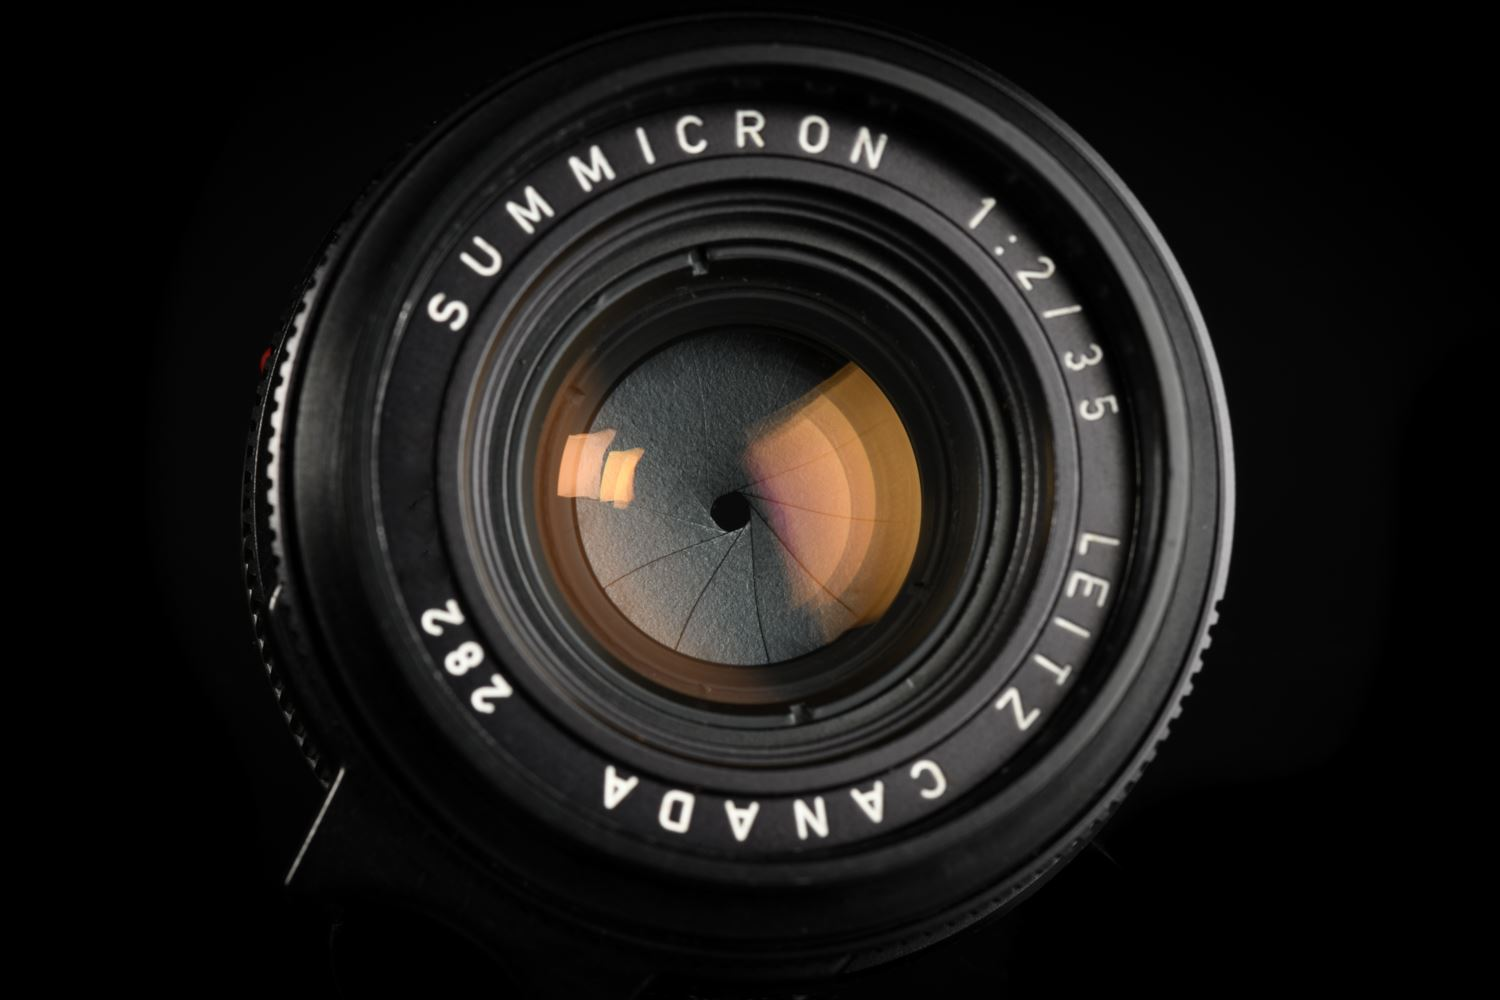 Picture of Leica Summicron-M 35mm f/2 Ver.2 6-element